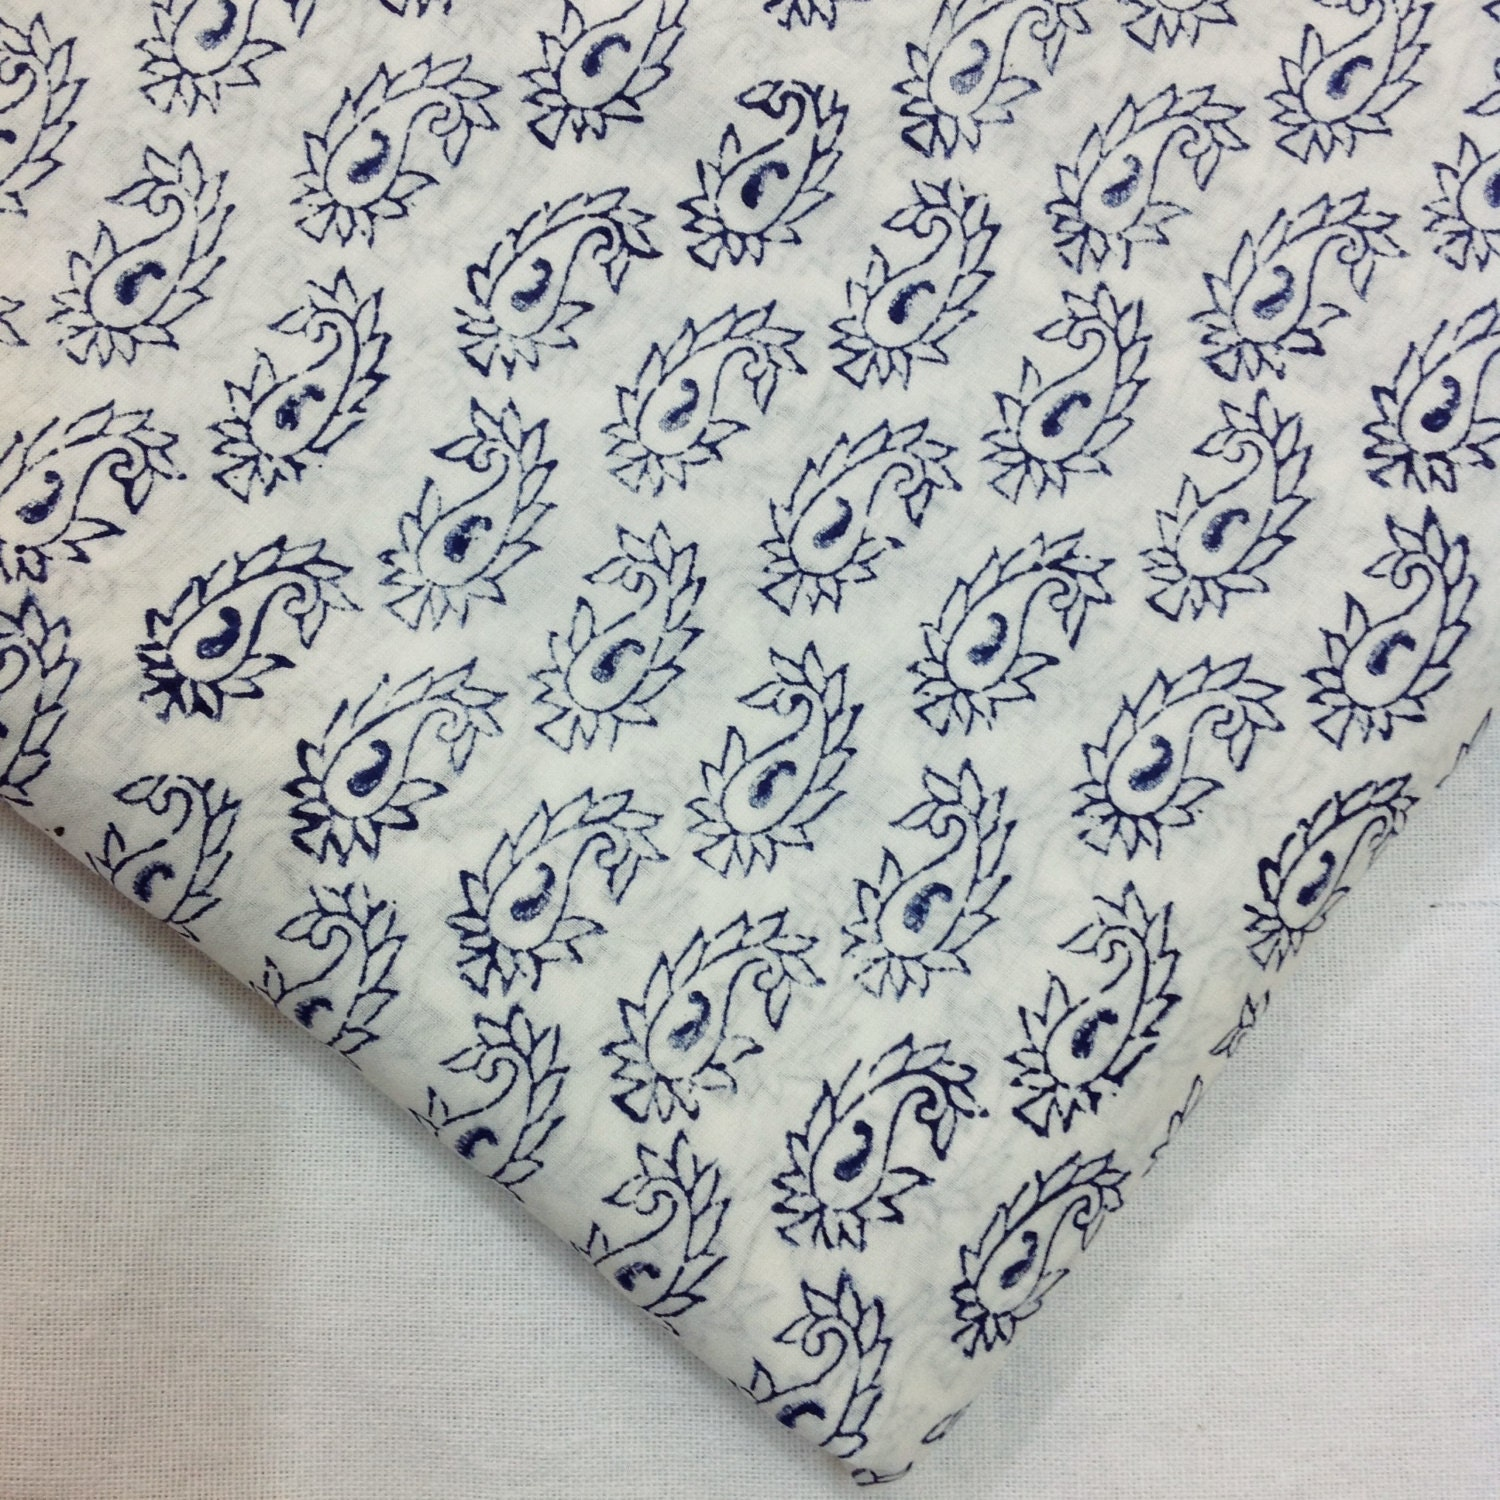 cotton fabric printing Textile printing is the process of  their own printed cotton to sell at home, printing single  the screen onto the fabric digital textile printing.